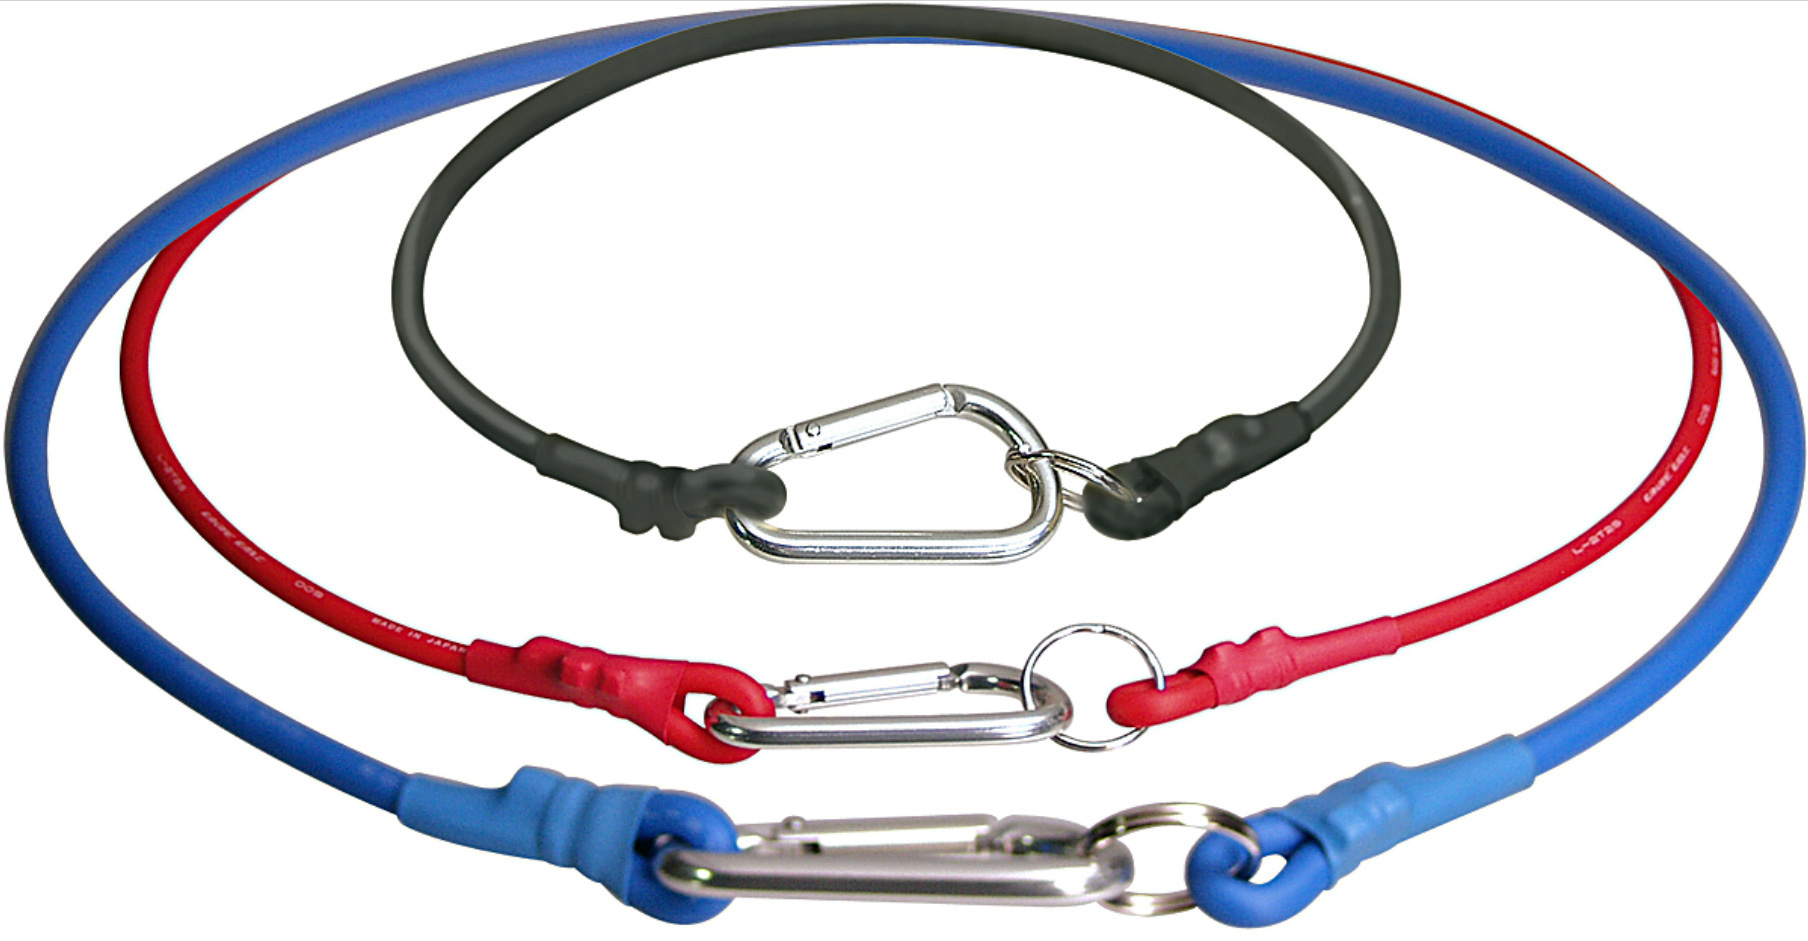 Gaffers Tape Holder Strap - 3 Foot Loop GT-CTS3